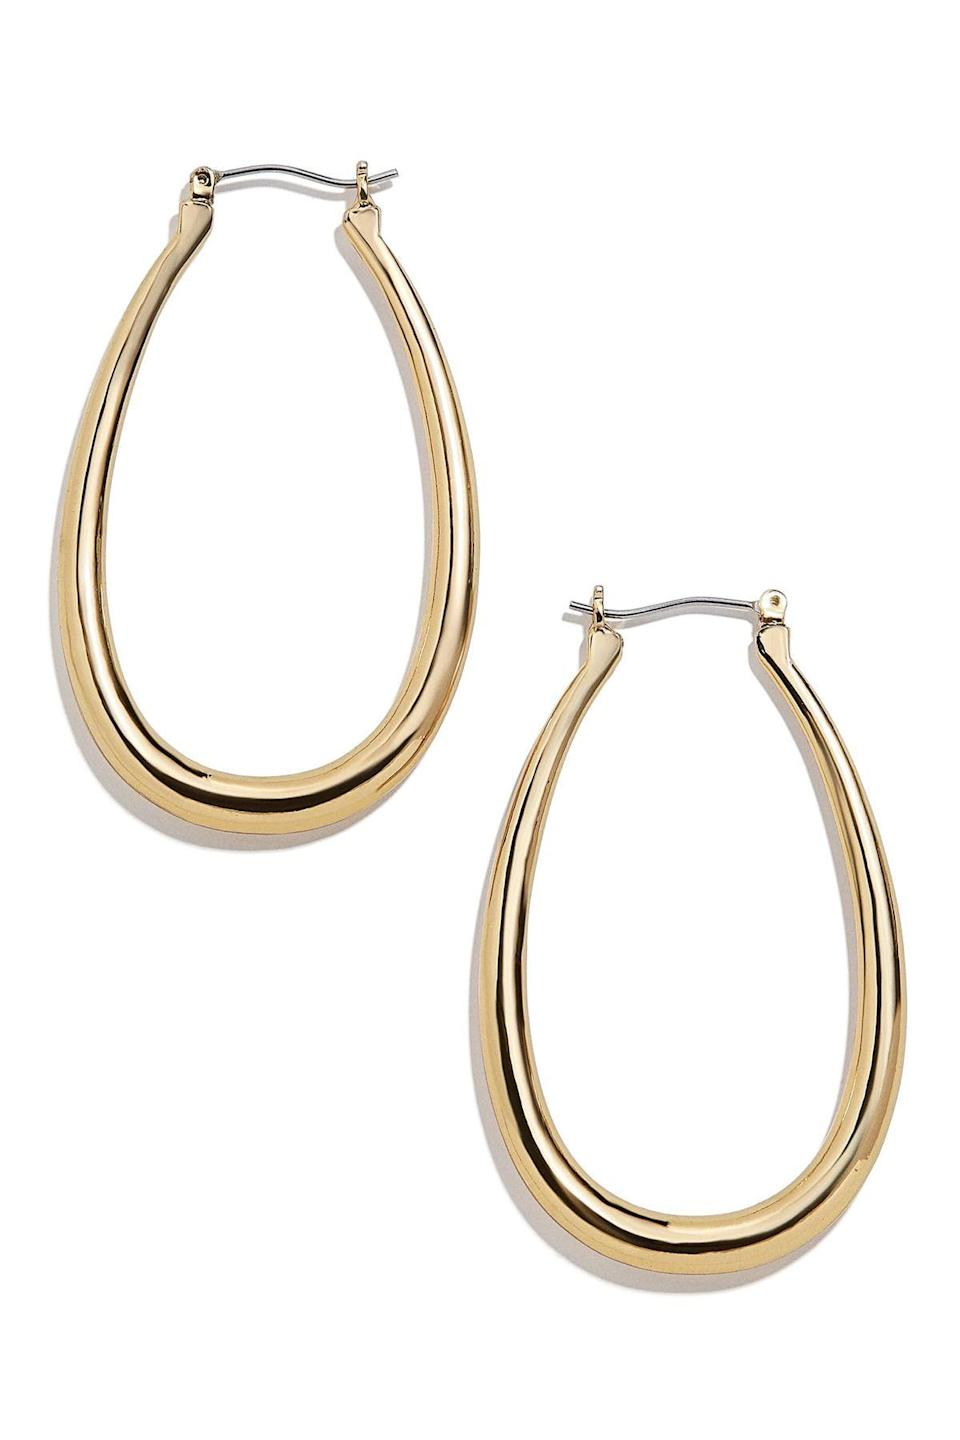 """<p><strong>Baublebar</strong></p><p><strong>$36.00</strong></p><p><a href=""""https://go.redirectingat.com?id=74968X1596630&url=https%3A%2F%2Fwww.nordstrom.com%2Fs%2Fbaublebar-sophia-hoop-earrings%2F5672471%3Forigin%3Dcategory-personalizedsort%26breadcrumb%3DHome%252FWomen%252FJewelry%252FEarrings%26color%3Dgold&sref=https%3A%2F%2Fwww.townandcountrymag.com%2Fstyle%2Fjewelry-and-watches%2Fg33469392%2Fthe-weekly-covet-july-31-2020%2F"""" rel=""""nofollow noopener"""" target=""""_blank"""" data-ylk=""""slk:Shop Now"""" class=""""link rapid-noclick-resp"""">Shop Now</a></p><p>For no fuss gold hoops go with this pair from Baublebar. An oblong silhouette is just as trusted as the classic round hoop.</p>"""